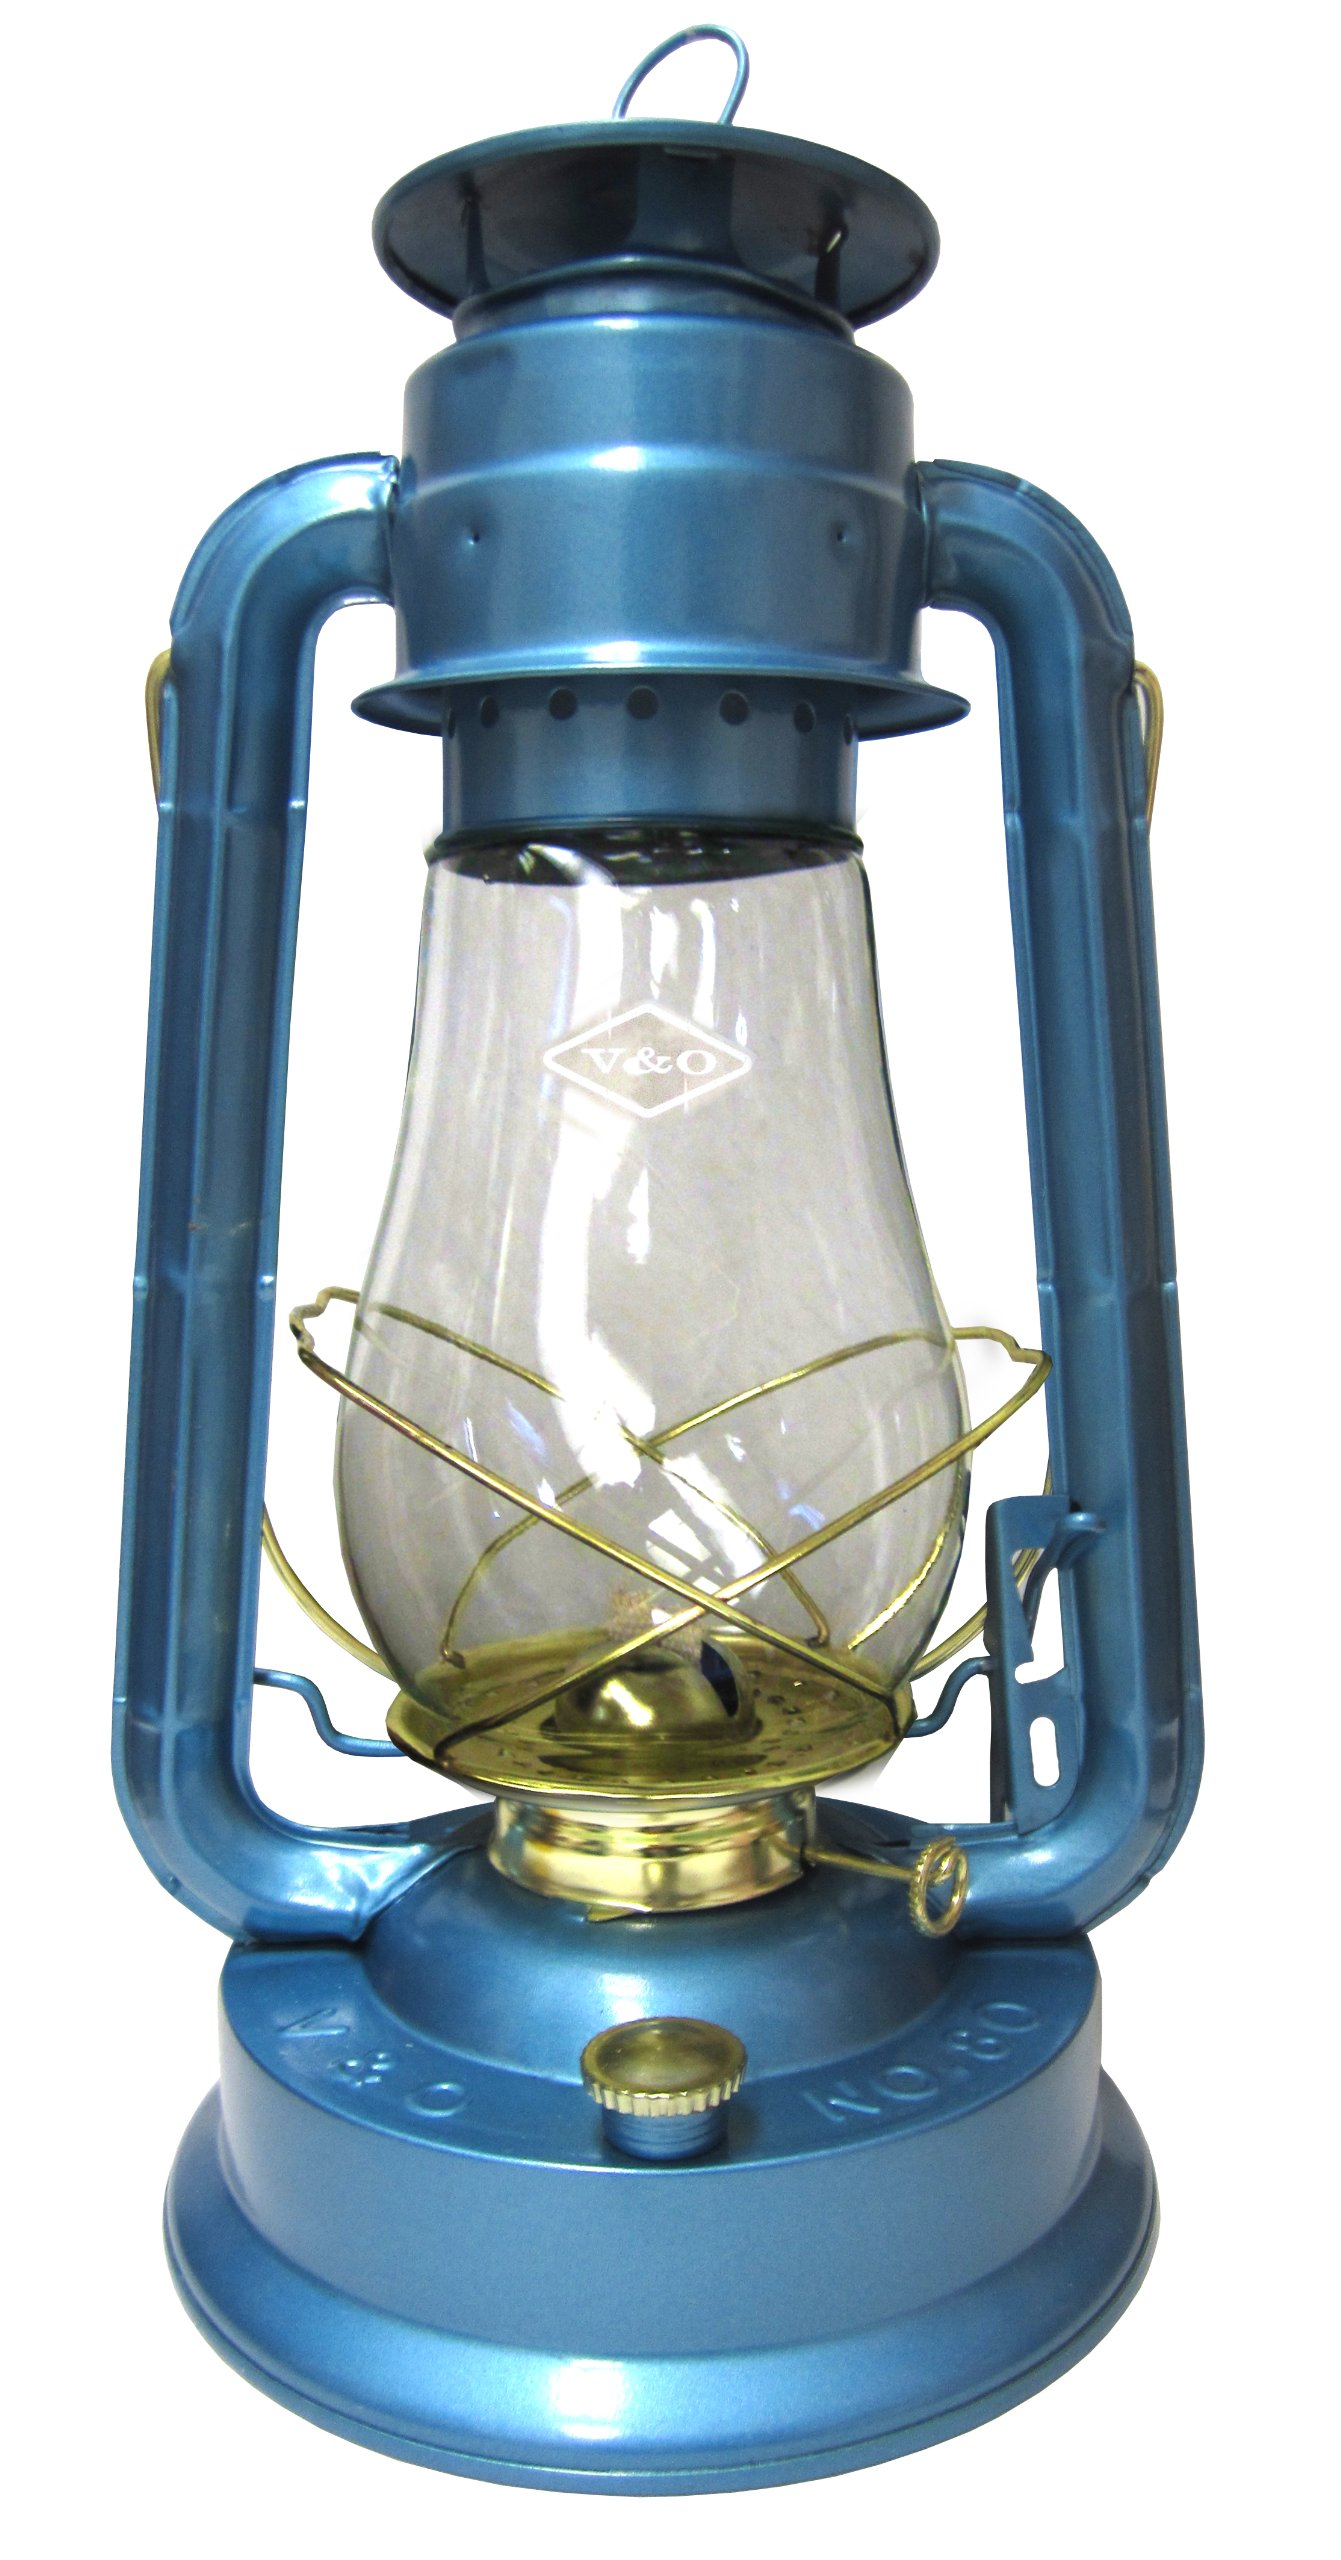 V&O 310-80061 Supreme Brass Trim Oil Lantern Blue